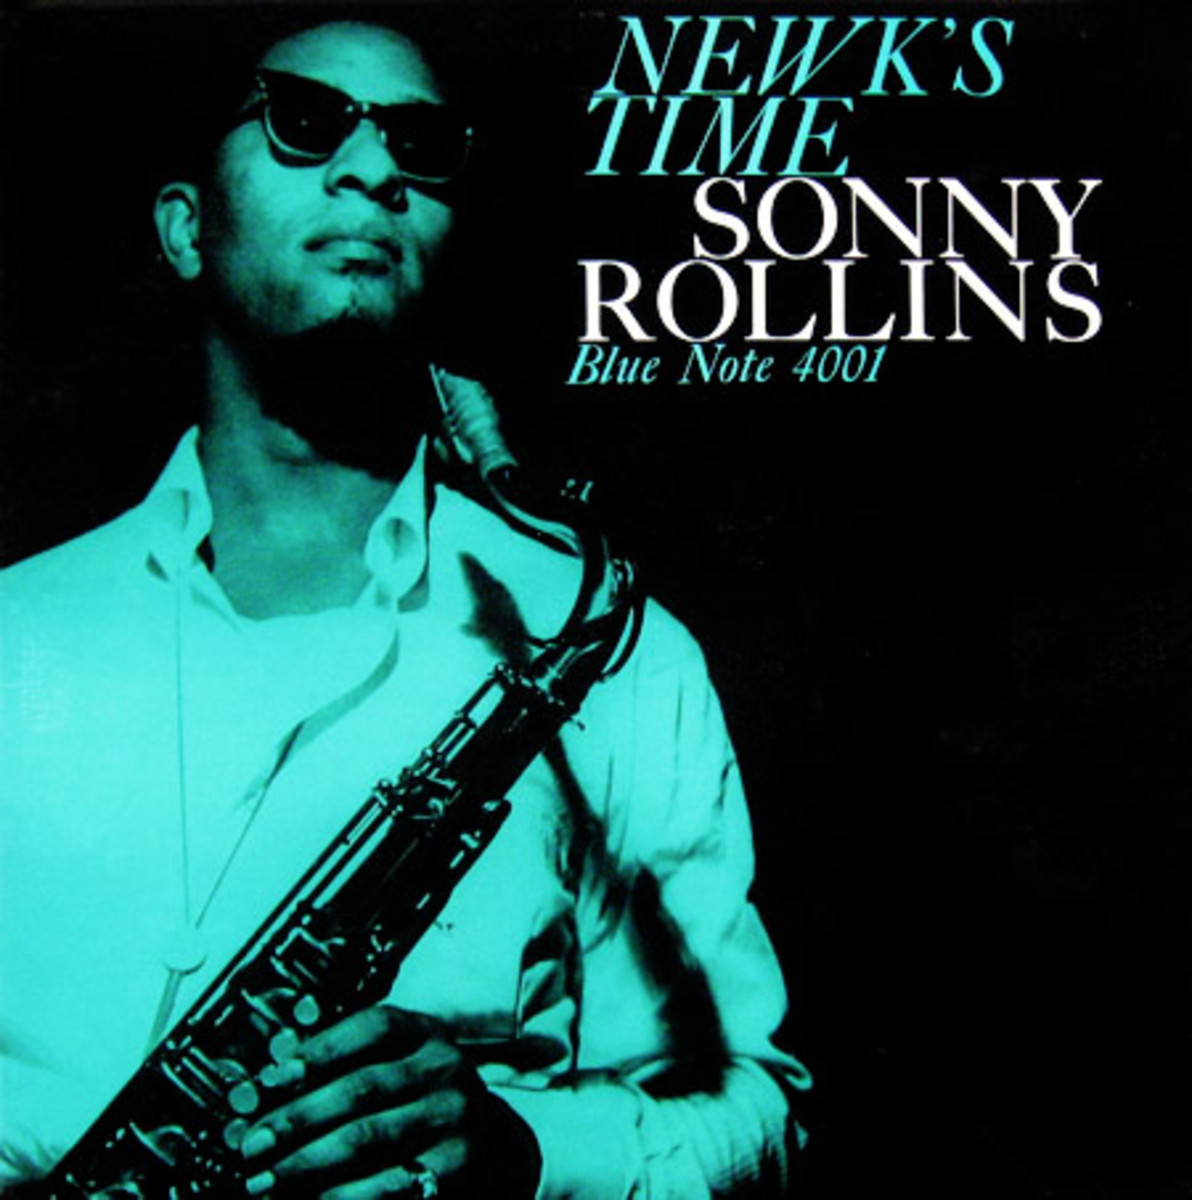 "Sonny Rollins ""Newk´s Time"" Blue Note Records BLP 4001 12"" LP Vinyl Record (1958) Album Cover Photo by Francis Wolff"